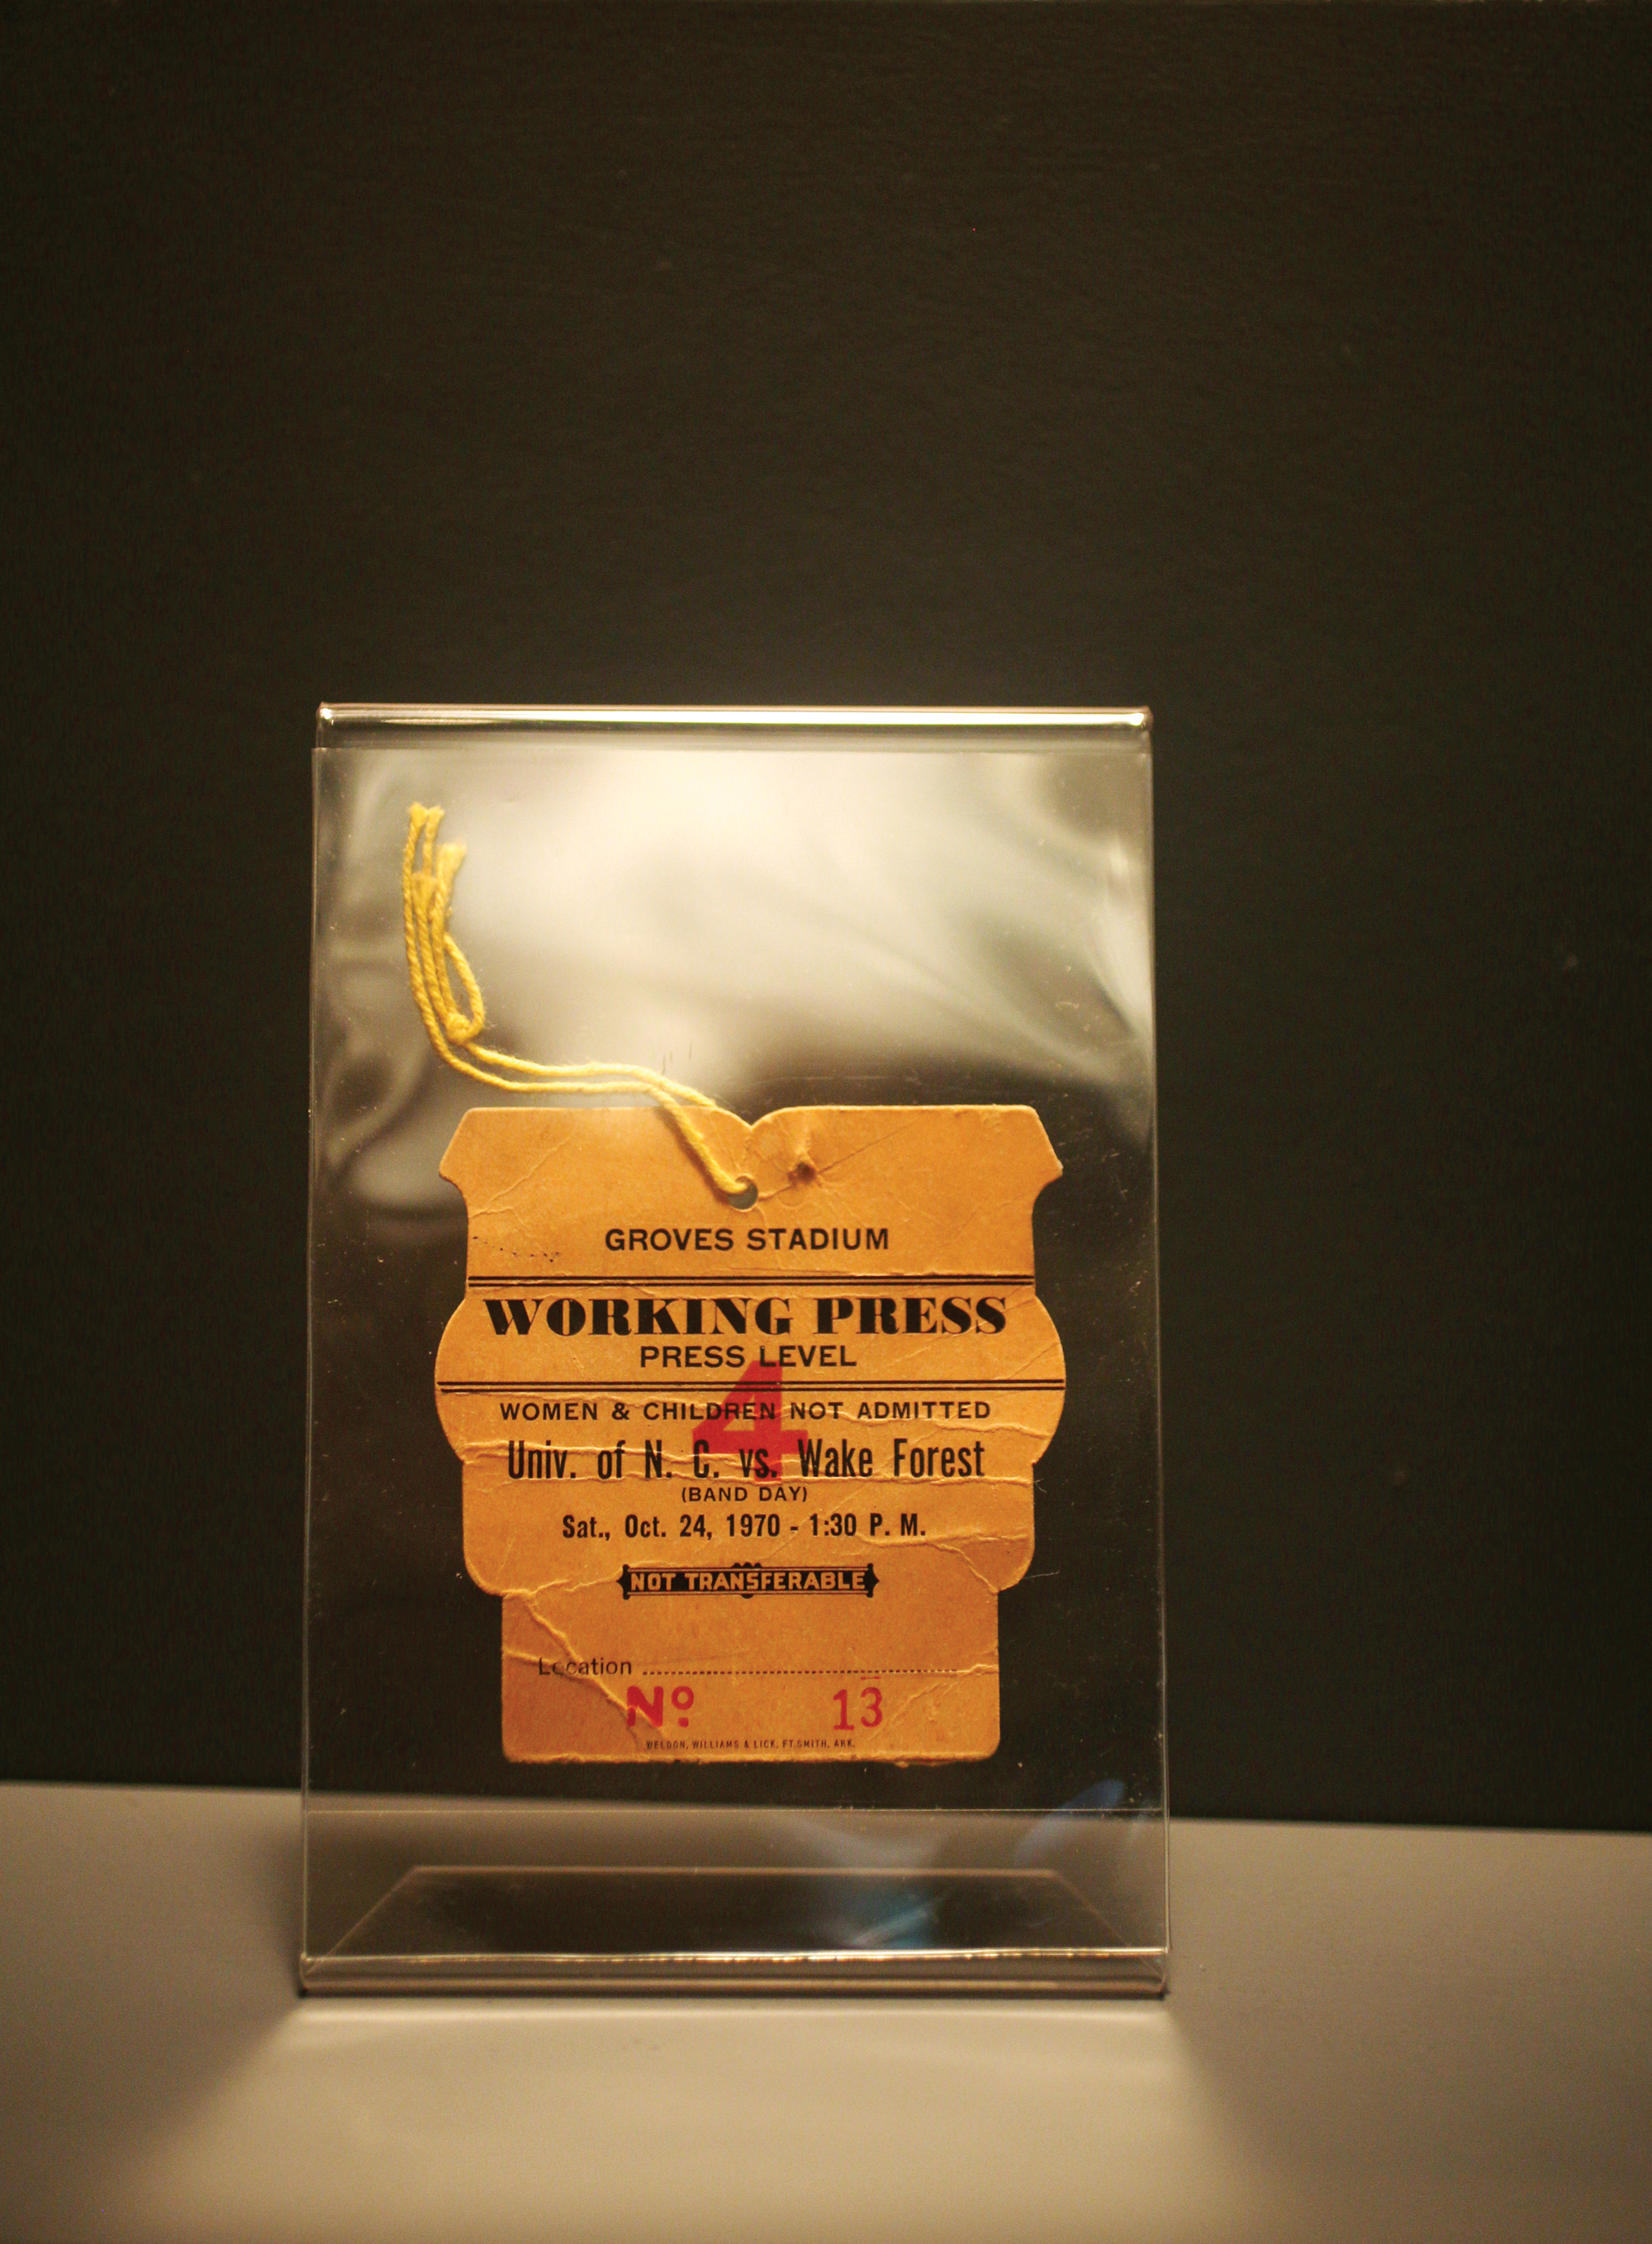 """Mary Garber's press badge from 1970 reads, """"women & children not admitted""""."""